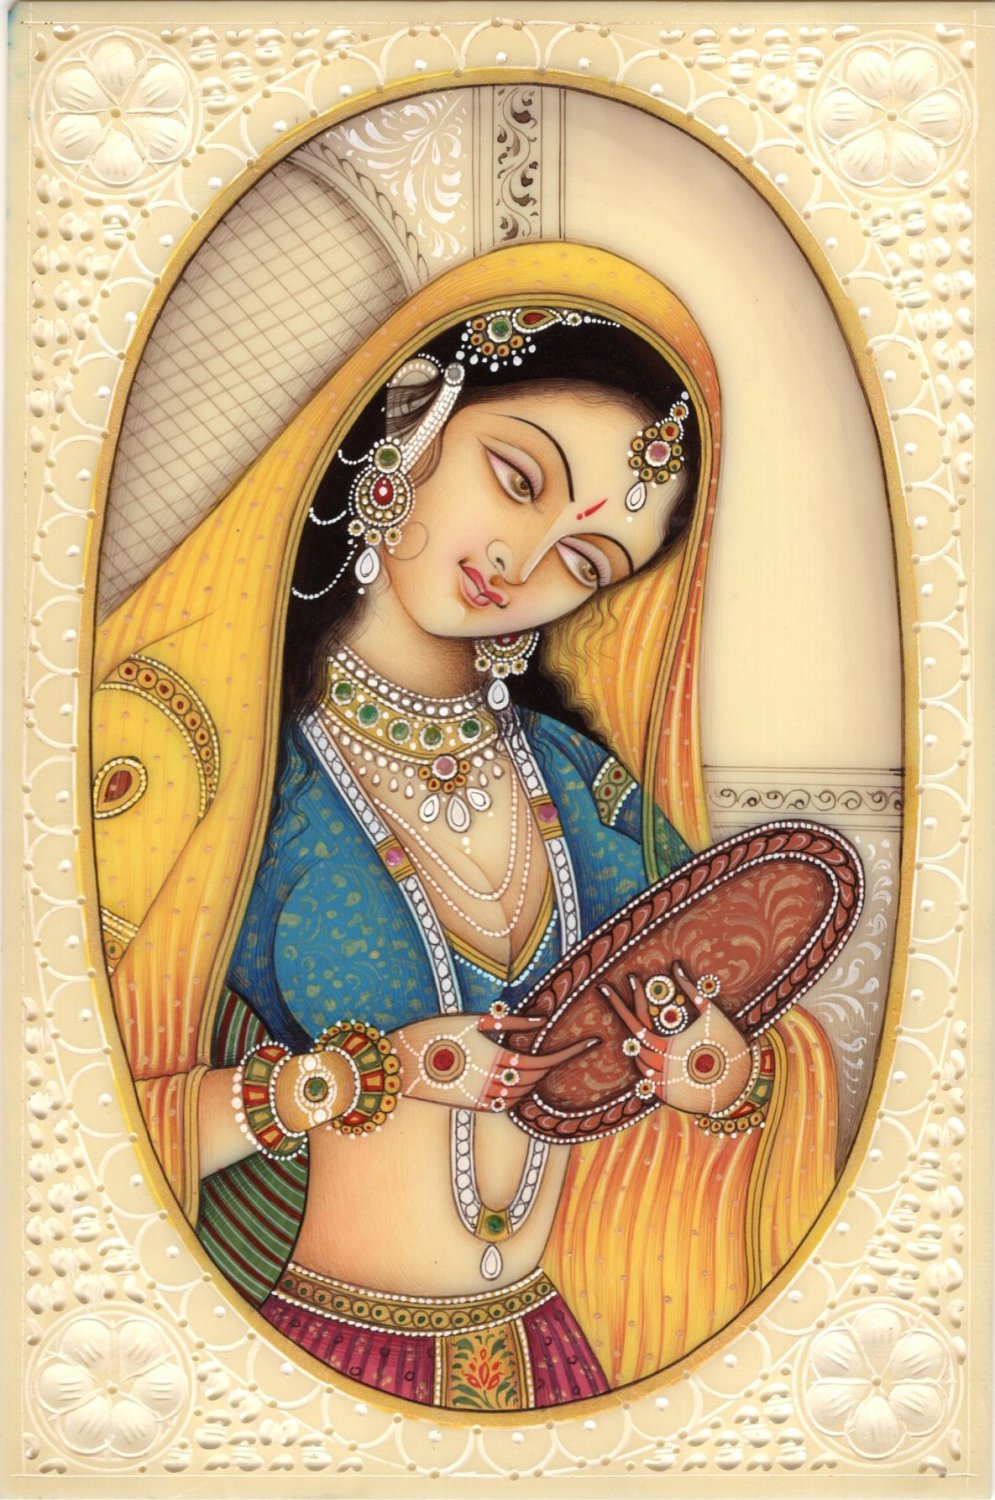 Indian Miniature Painting Rajasthani Lady Princess Handmade Portrait Ethnic Art